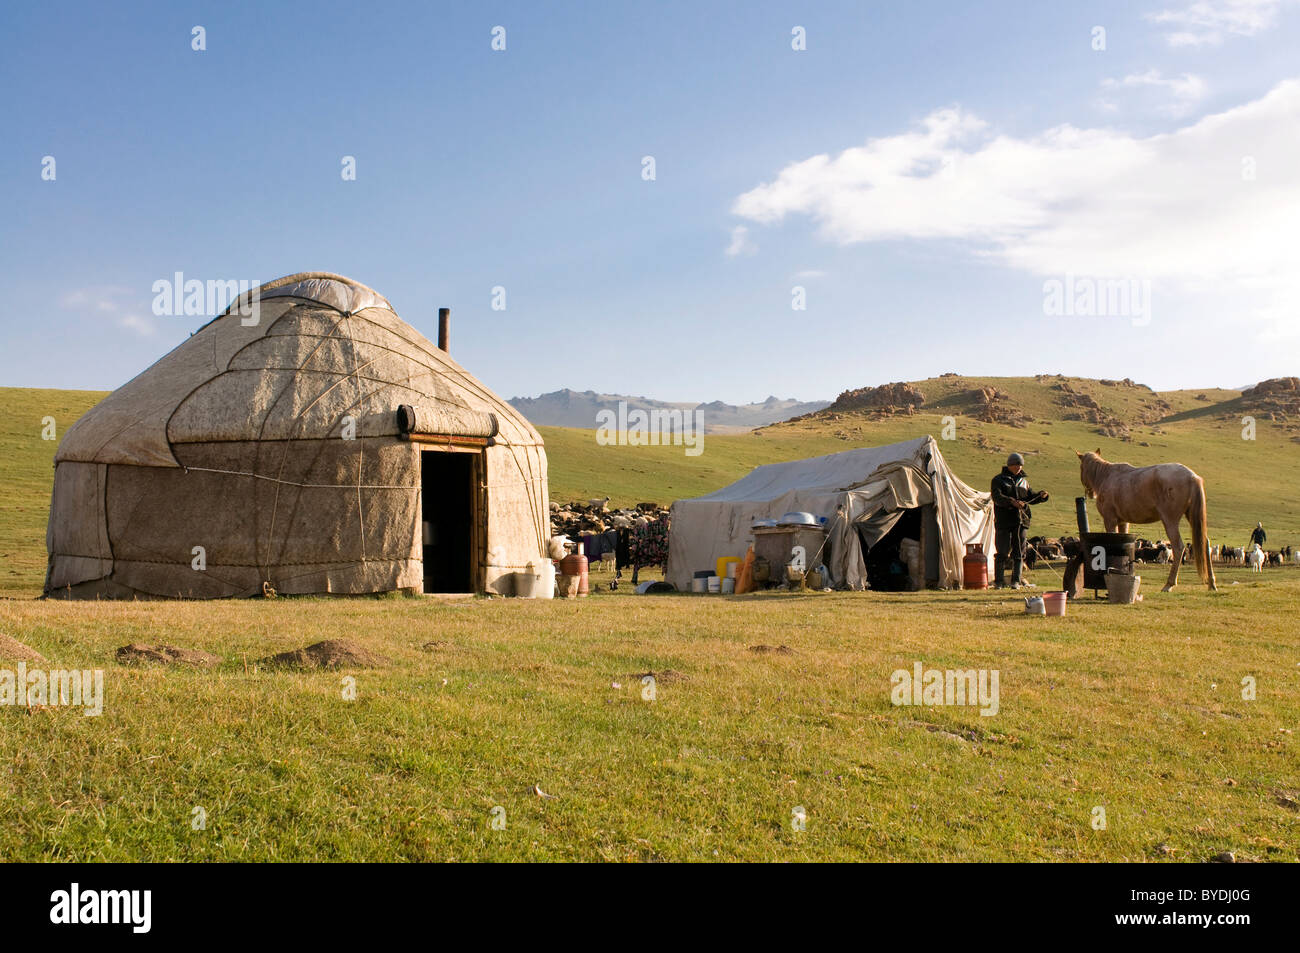 Central Asian Nomads 48